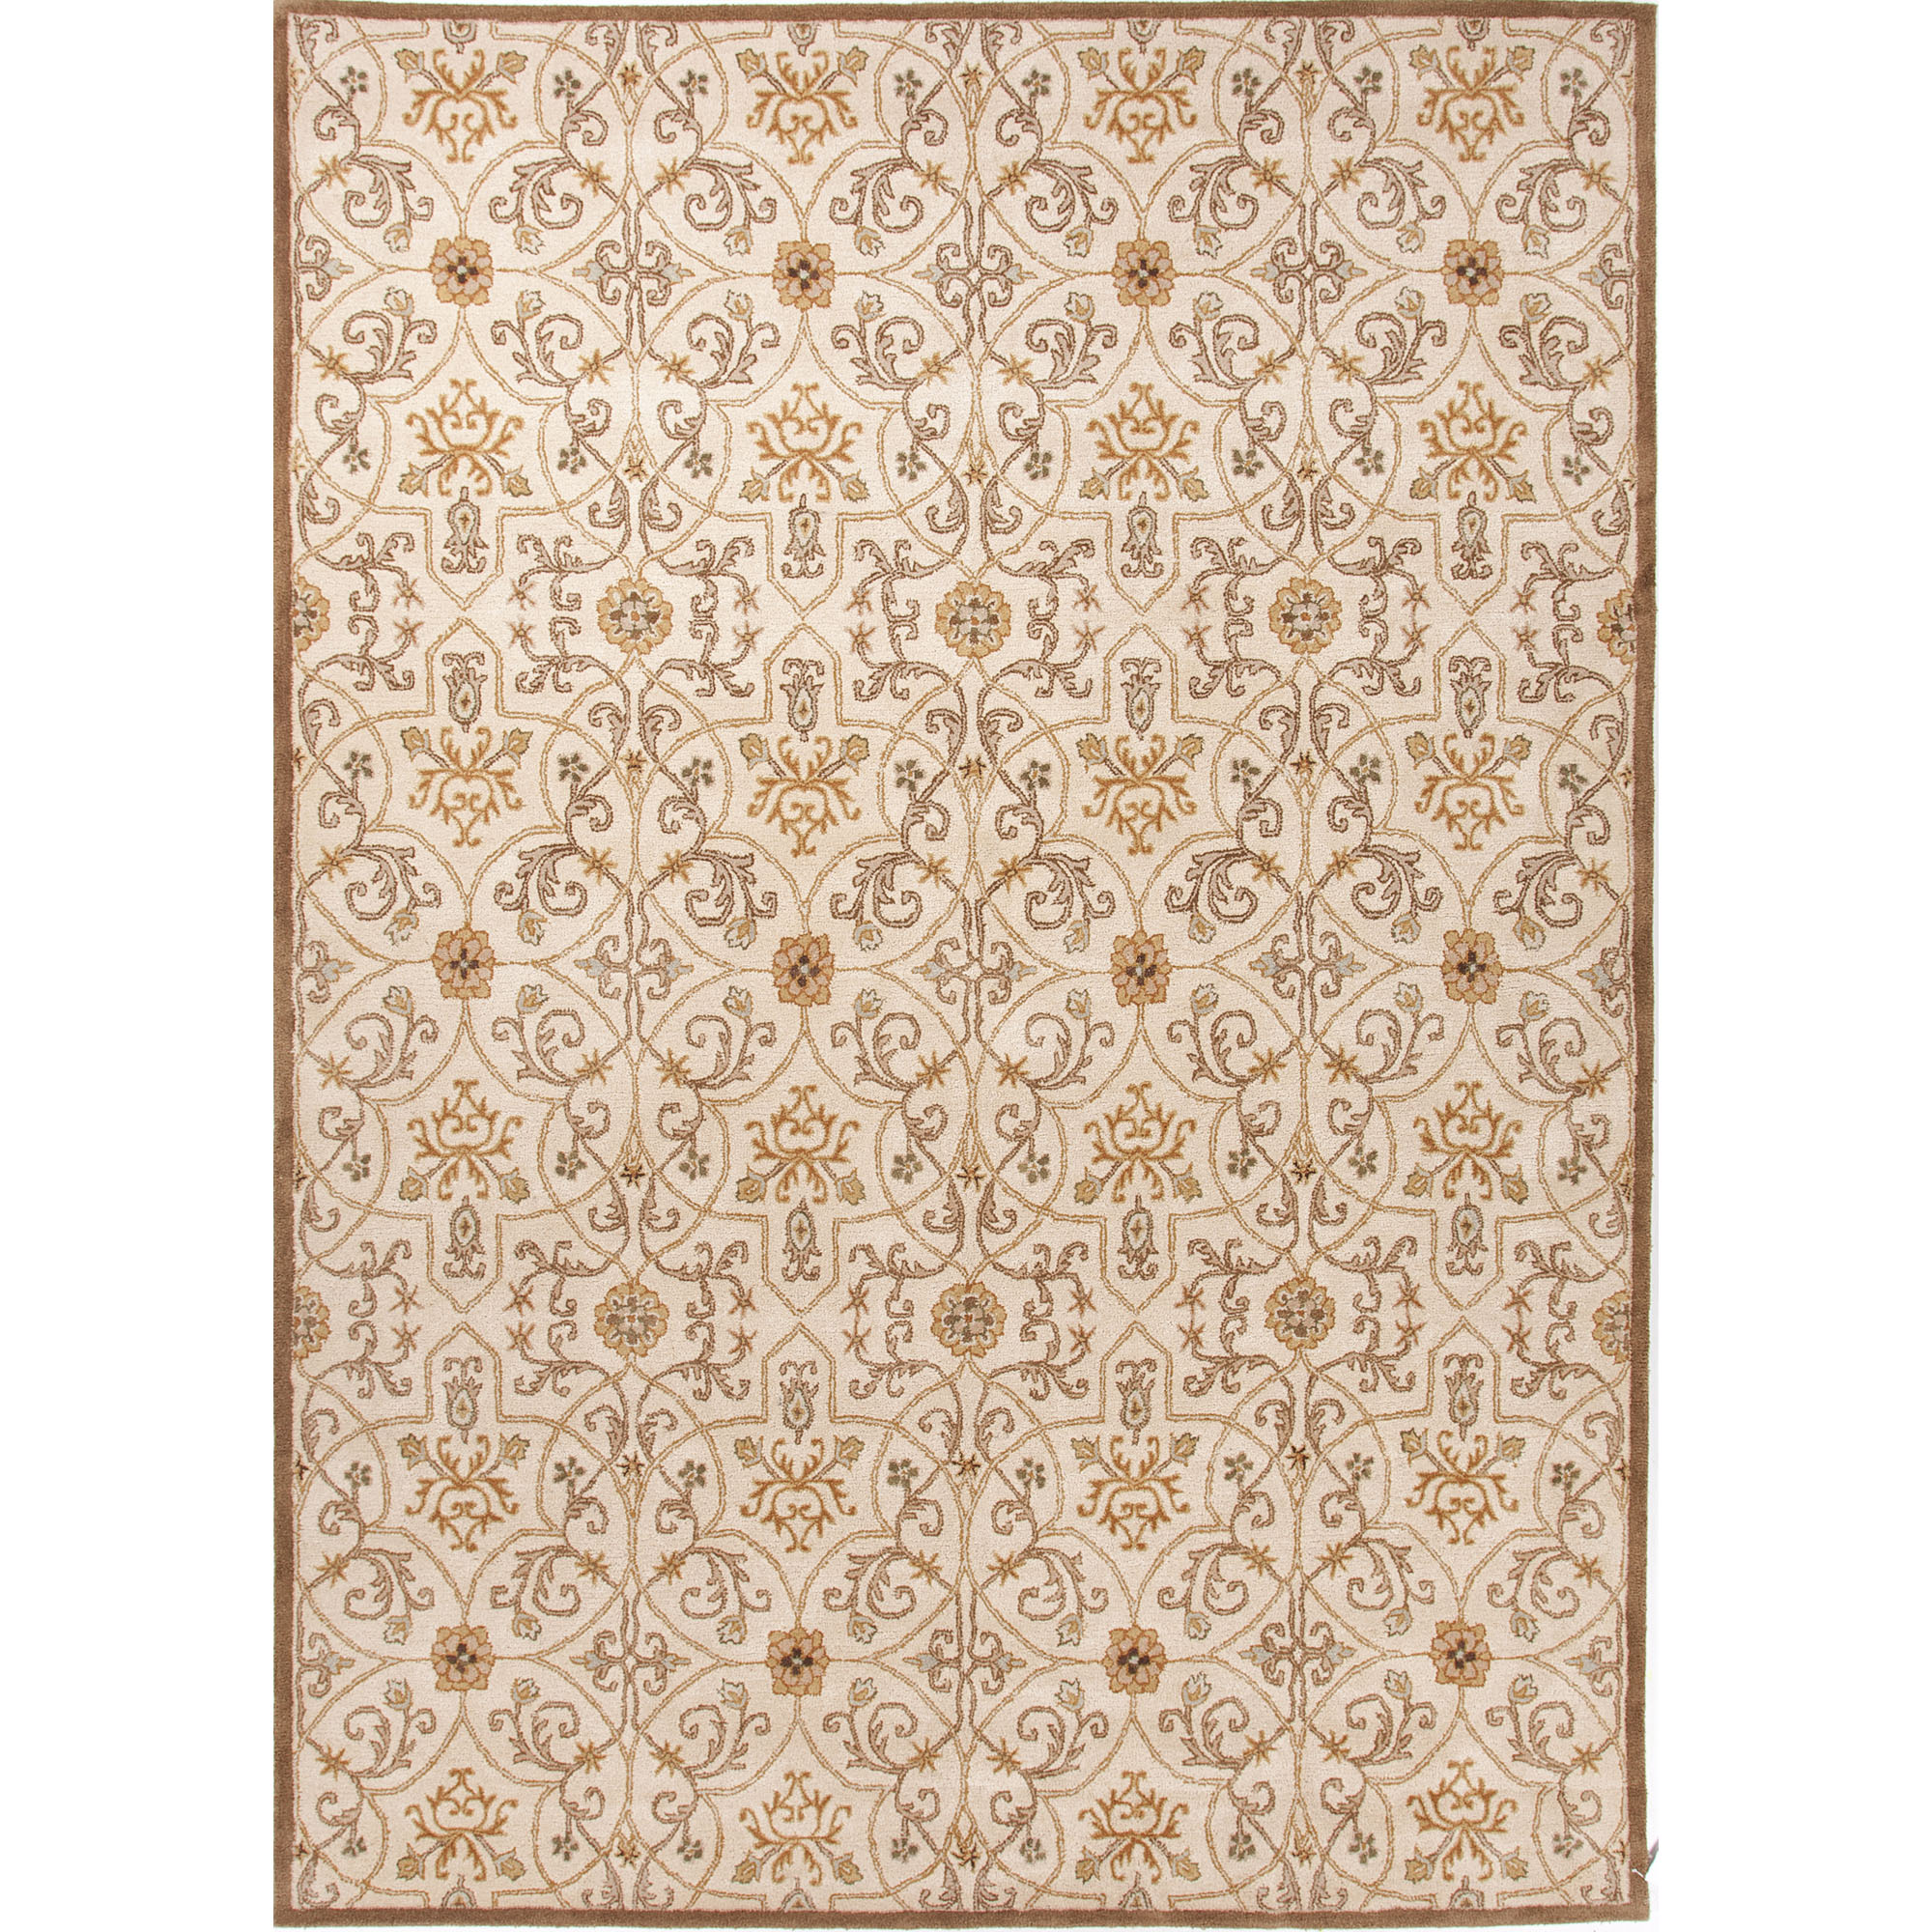 Poeme 3.6 x 5.6 Rug by JAIPUR Living at Malouf Furniture Co.